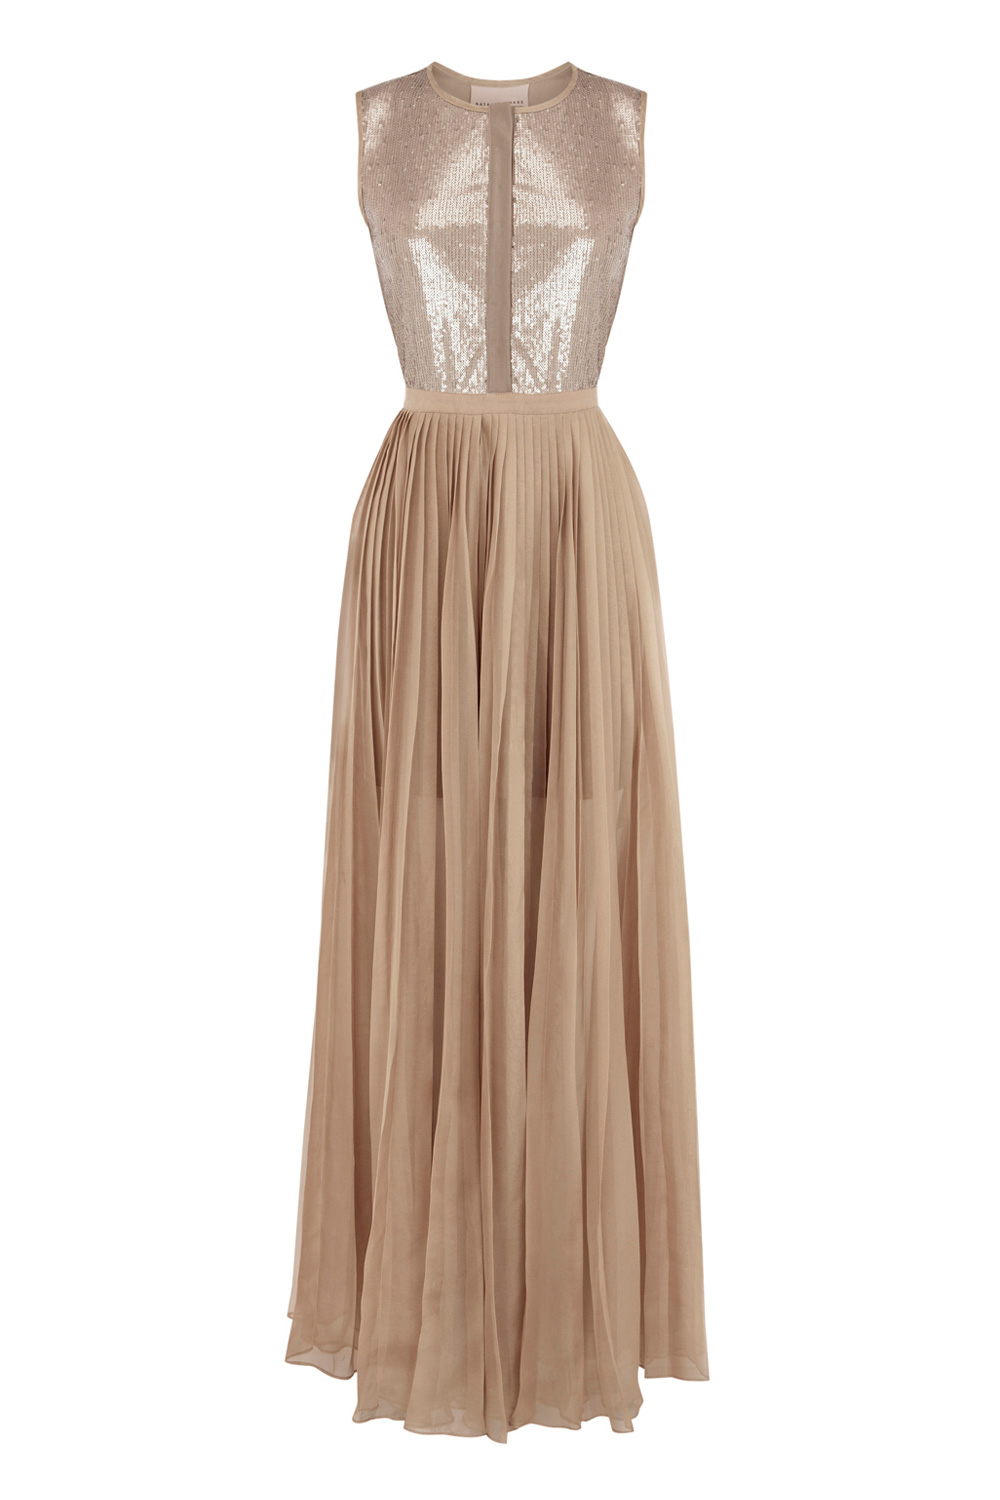 Winter weddings 20 items for guaranteed glitz glamour for Winter wedding guest dresses